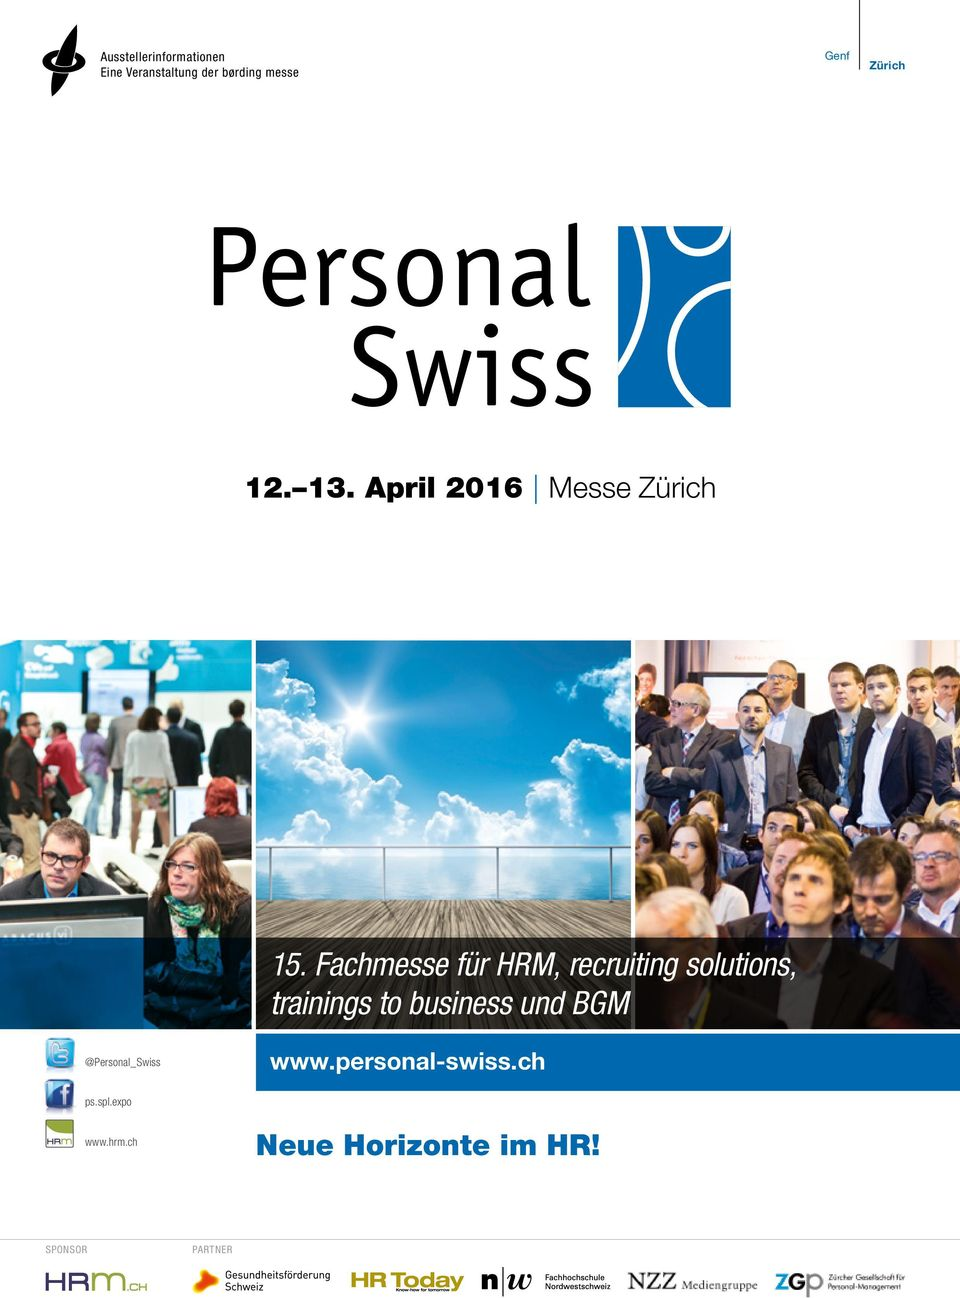 Fachmesse für HRM, recruiting solutions, trainings to business und